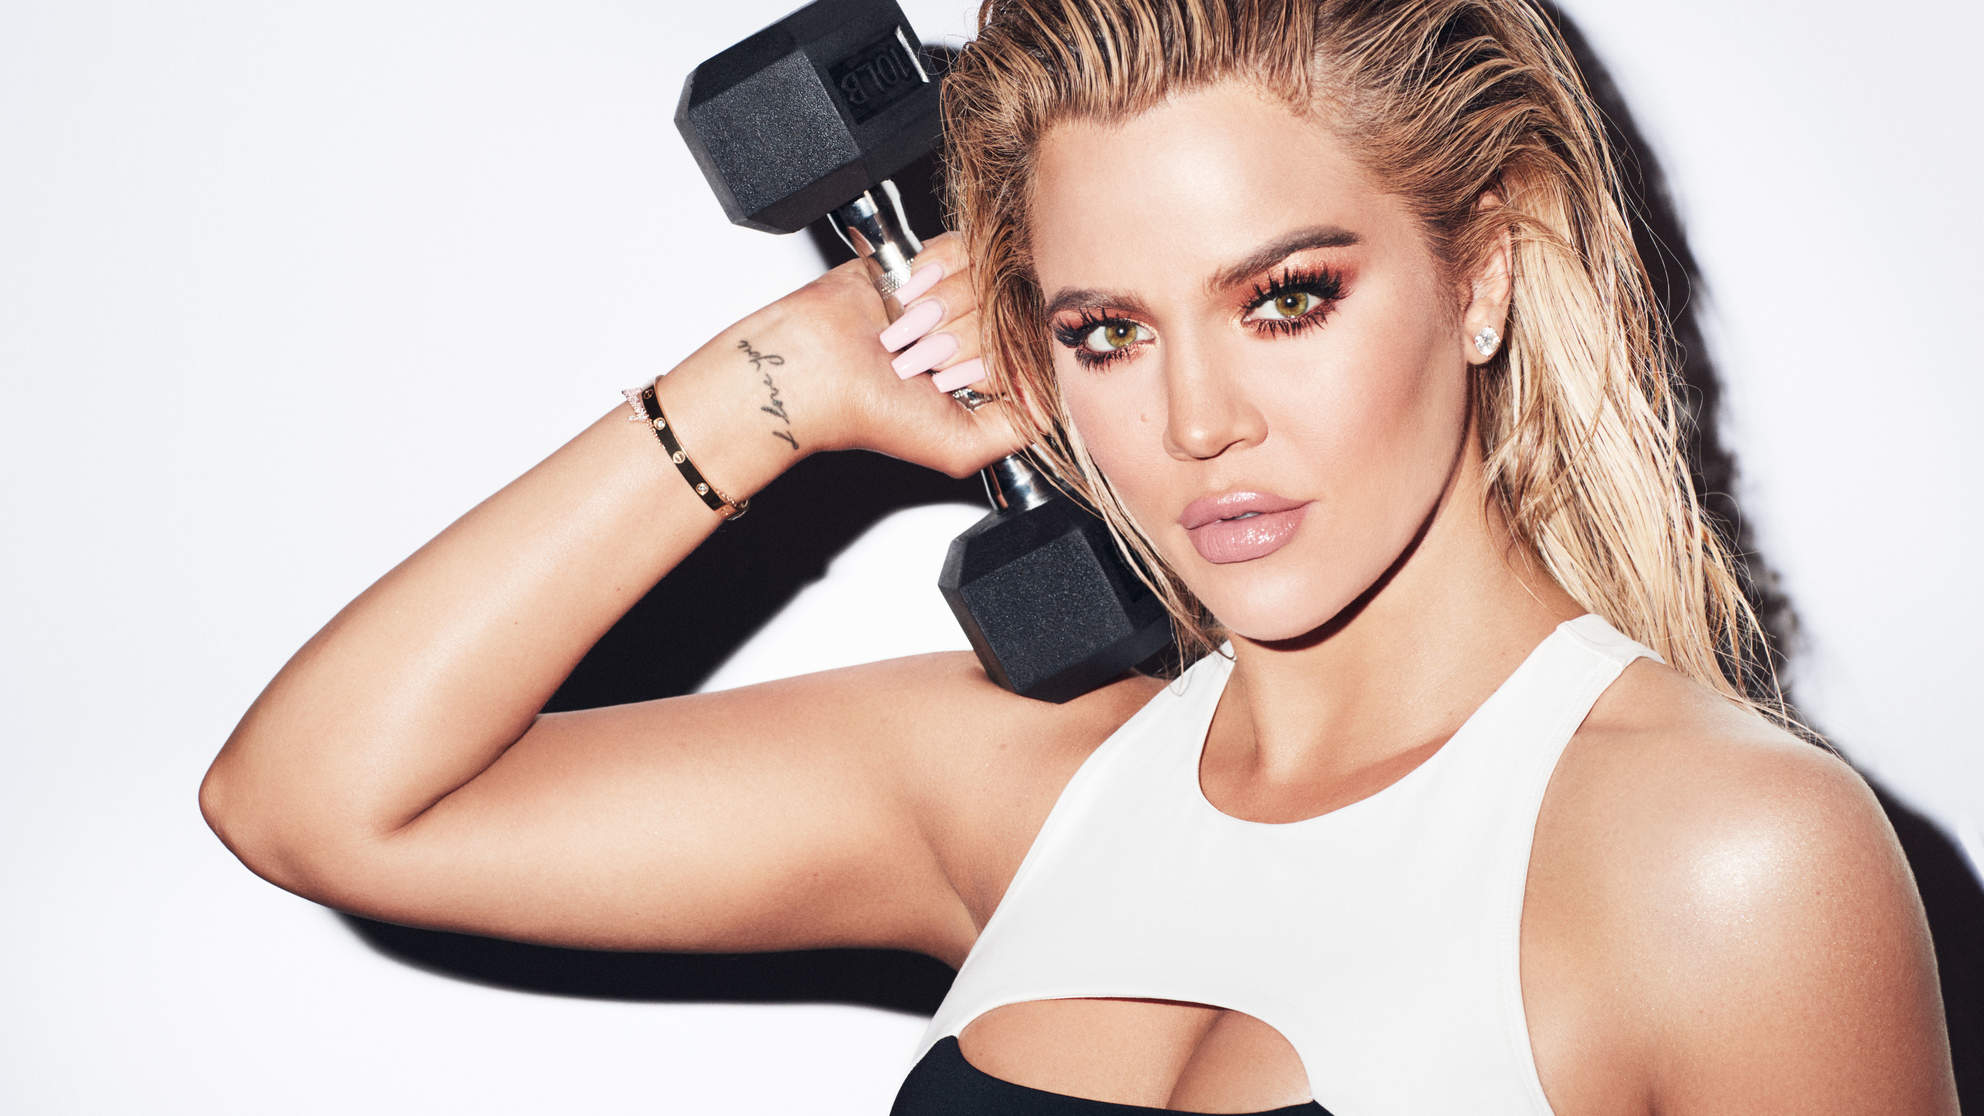 Khloe Kardashian, Tristan Thompson split amid rumors of his latest infidelity